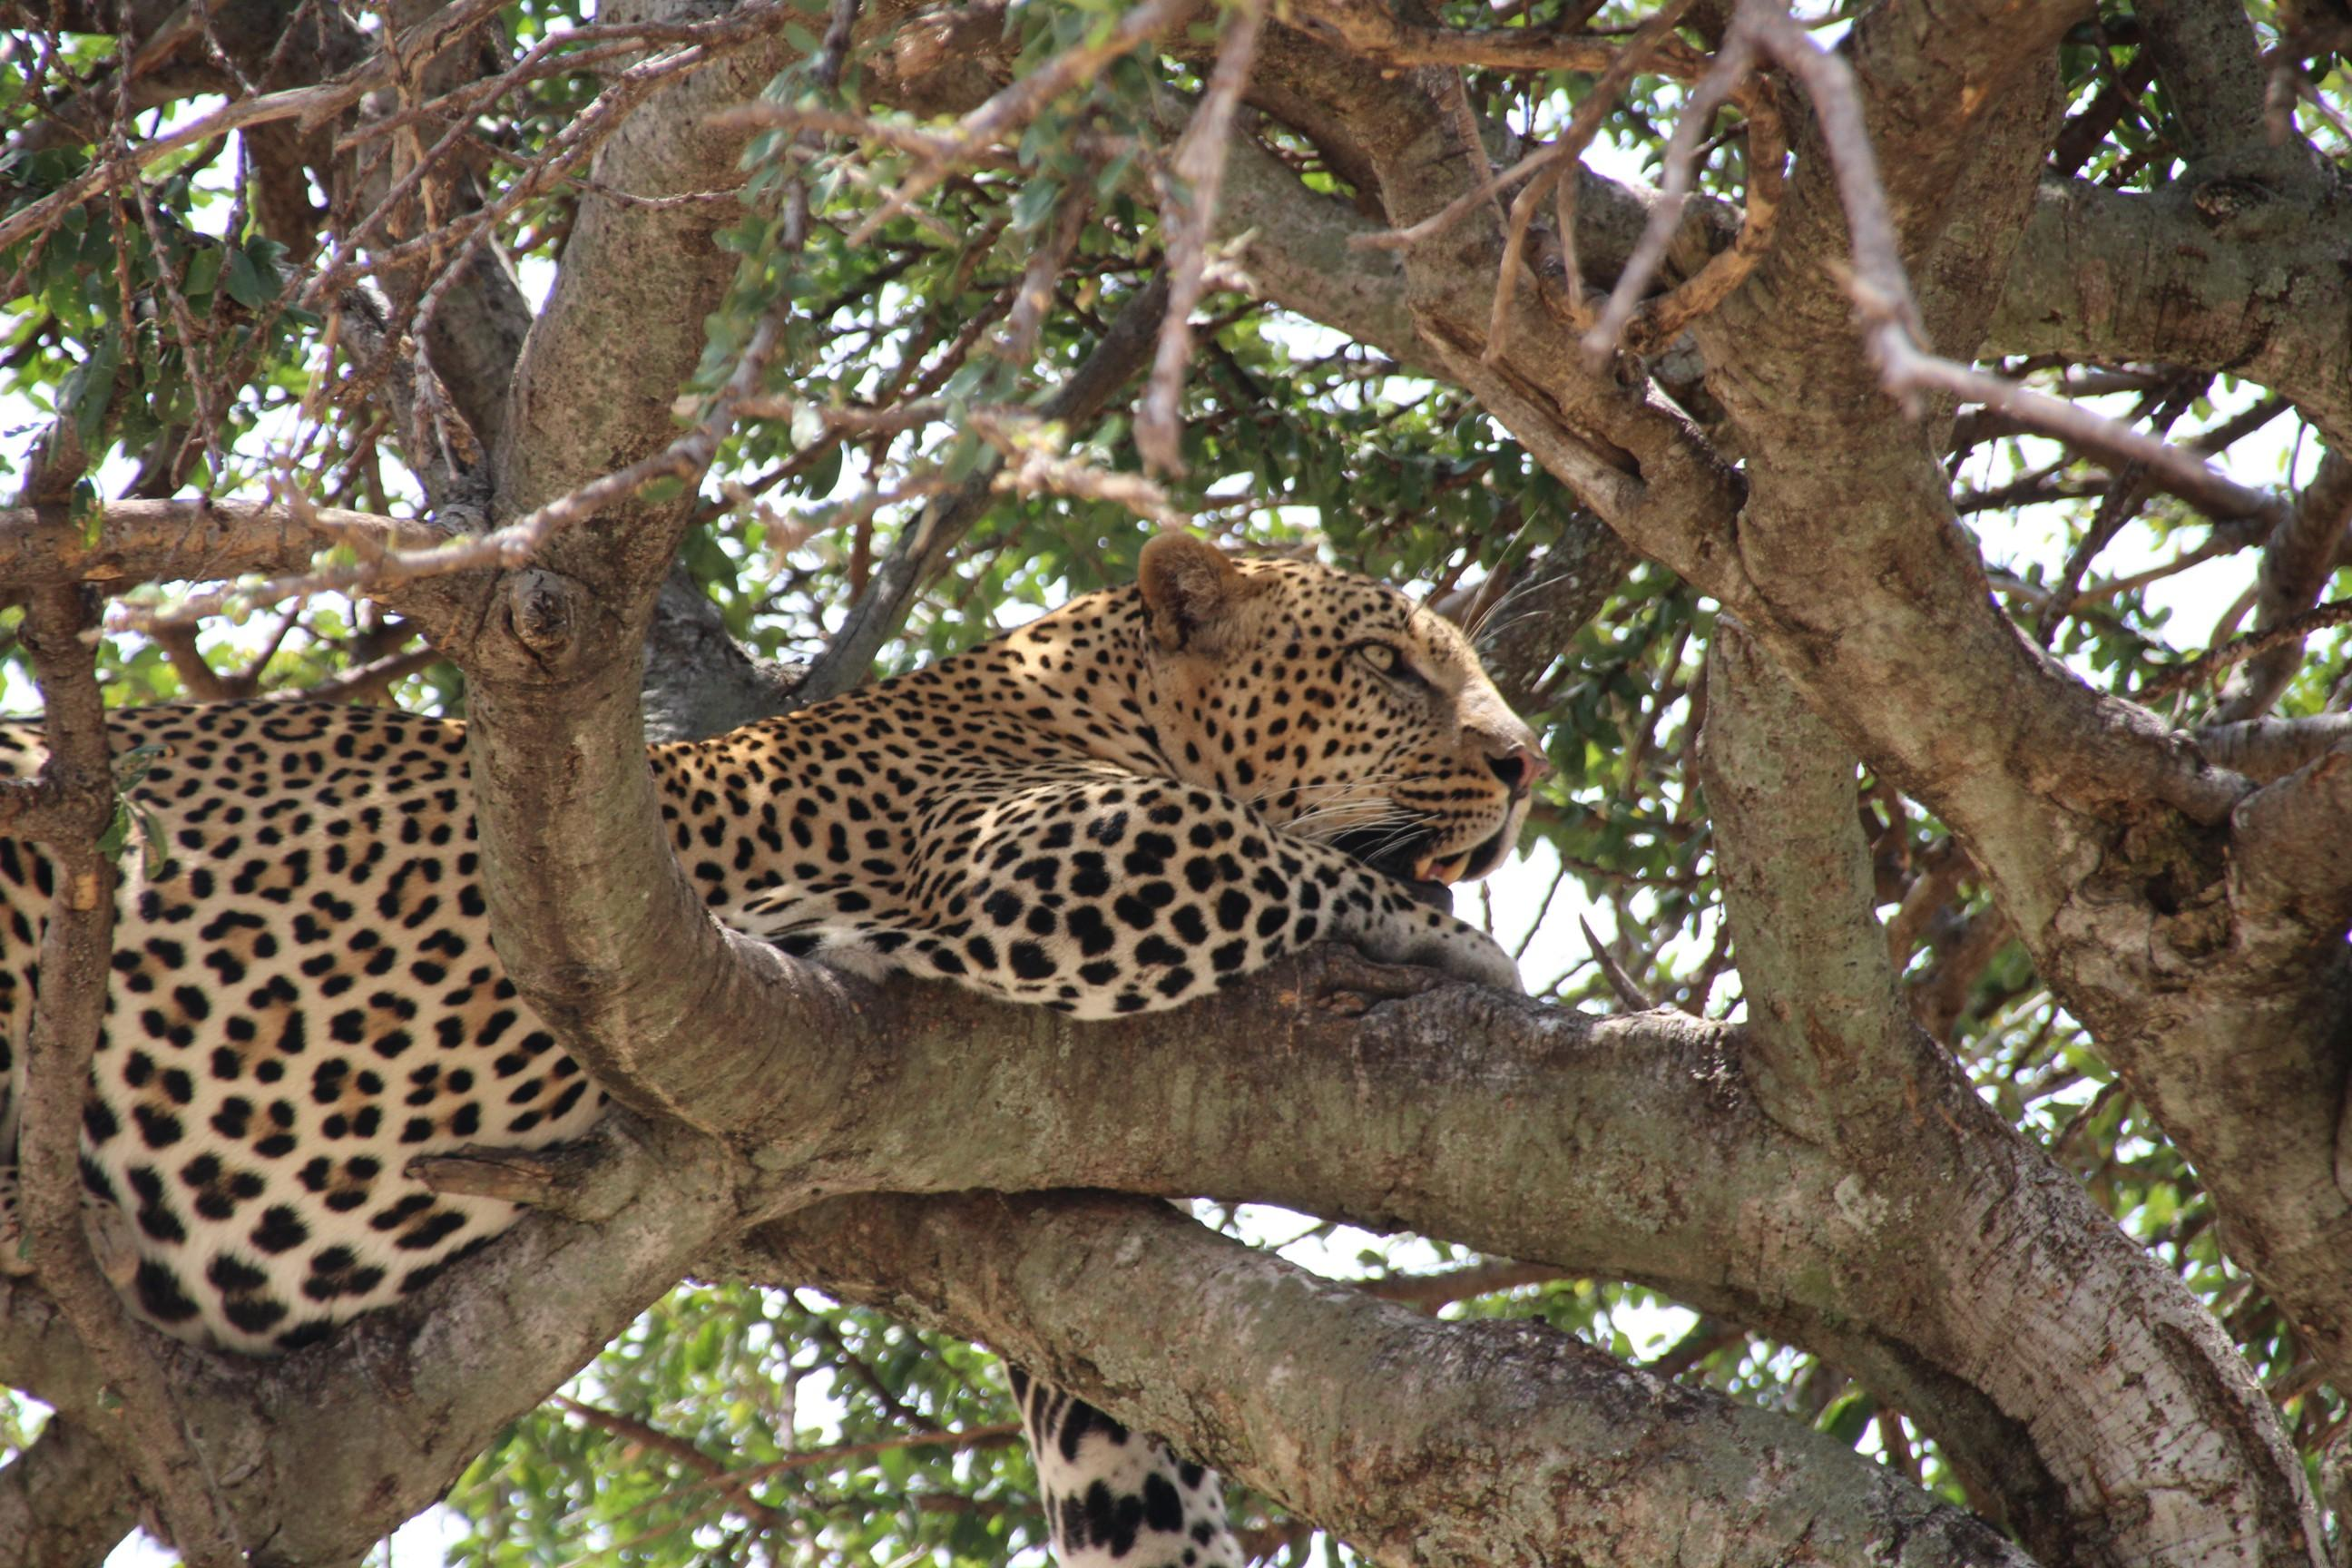 Ultimate African Safari Adventure - You don't want to miss